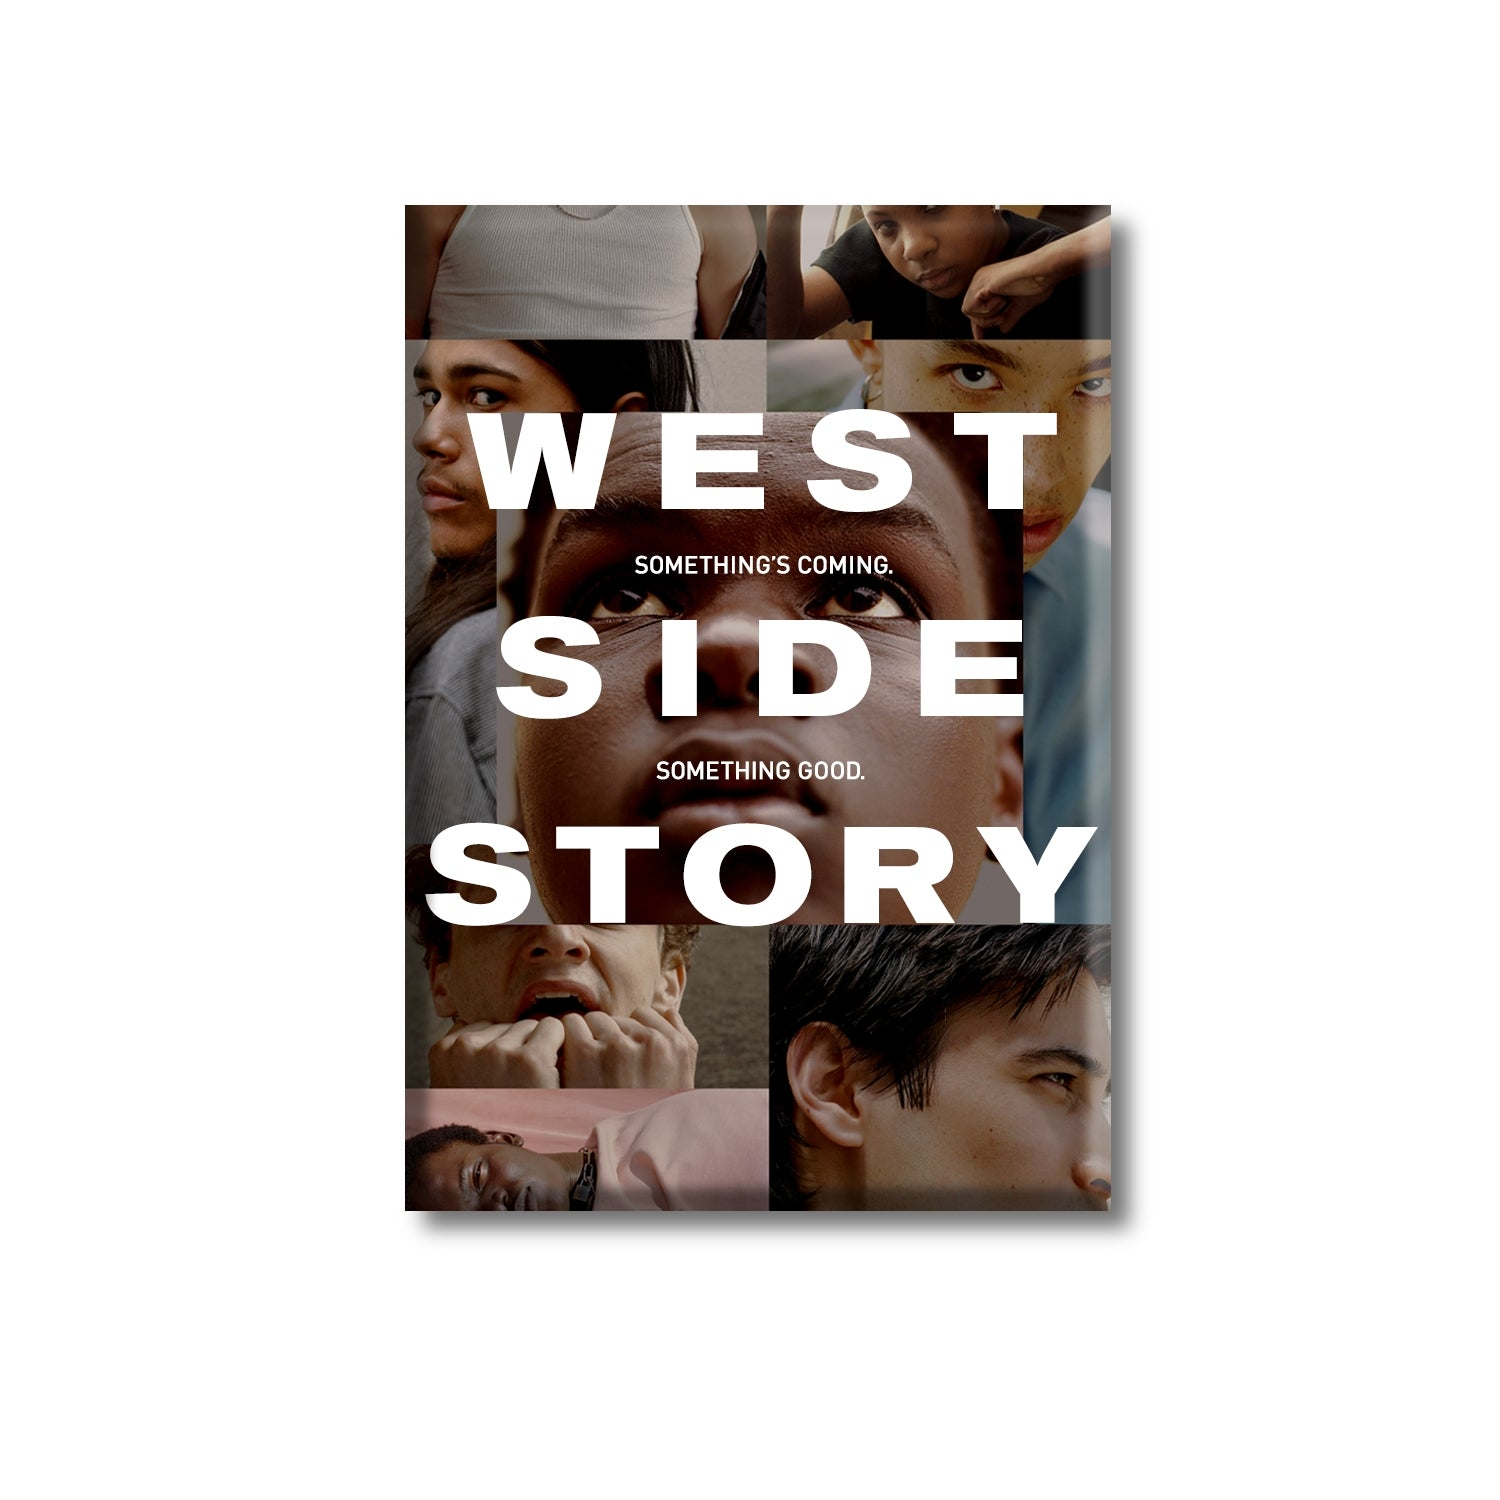 WEST SIDE STORY Magnet Image